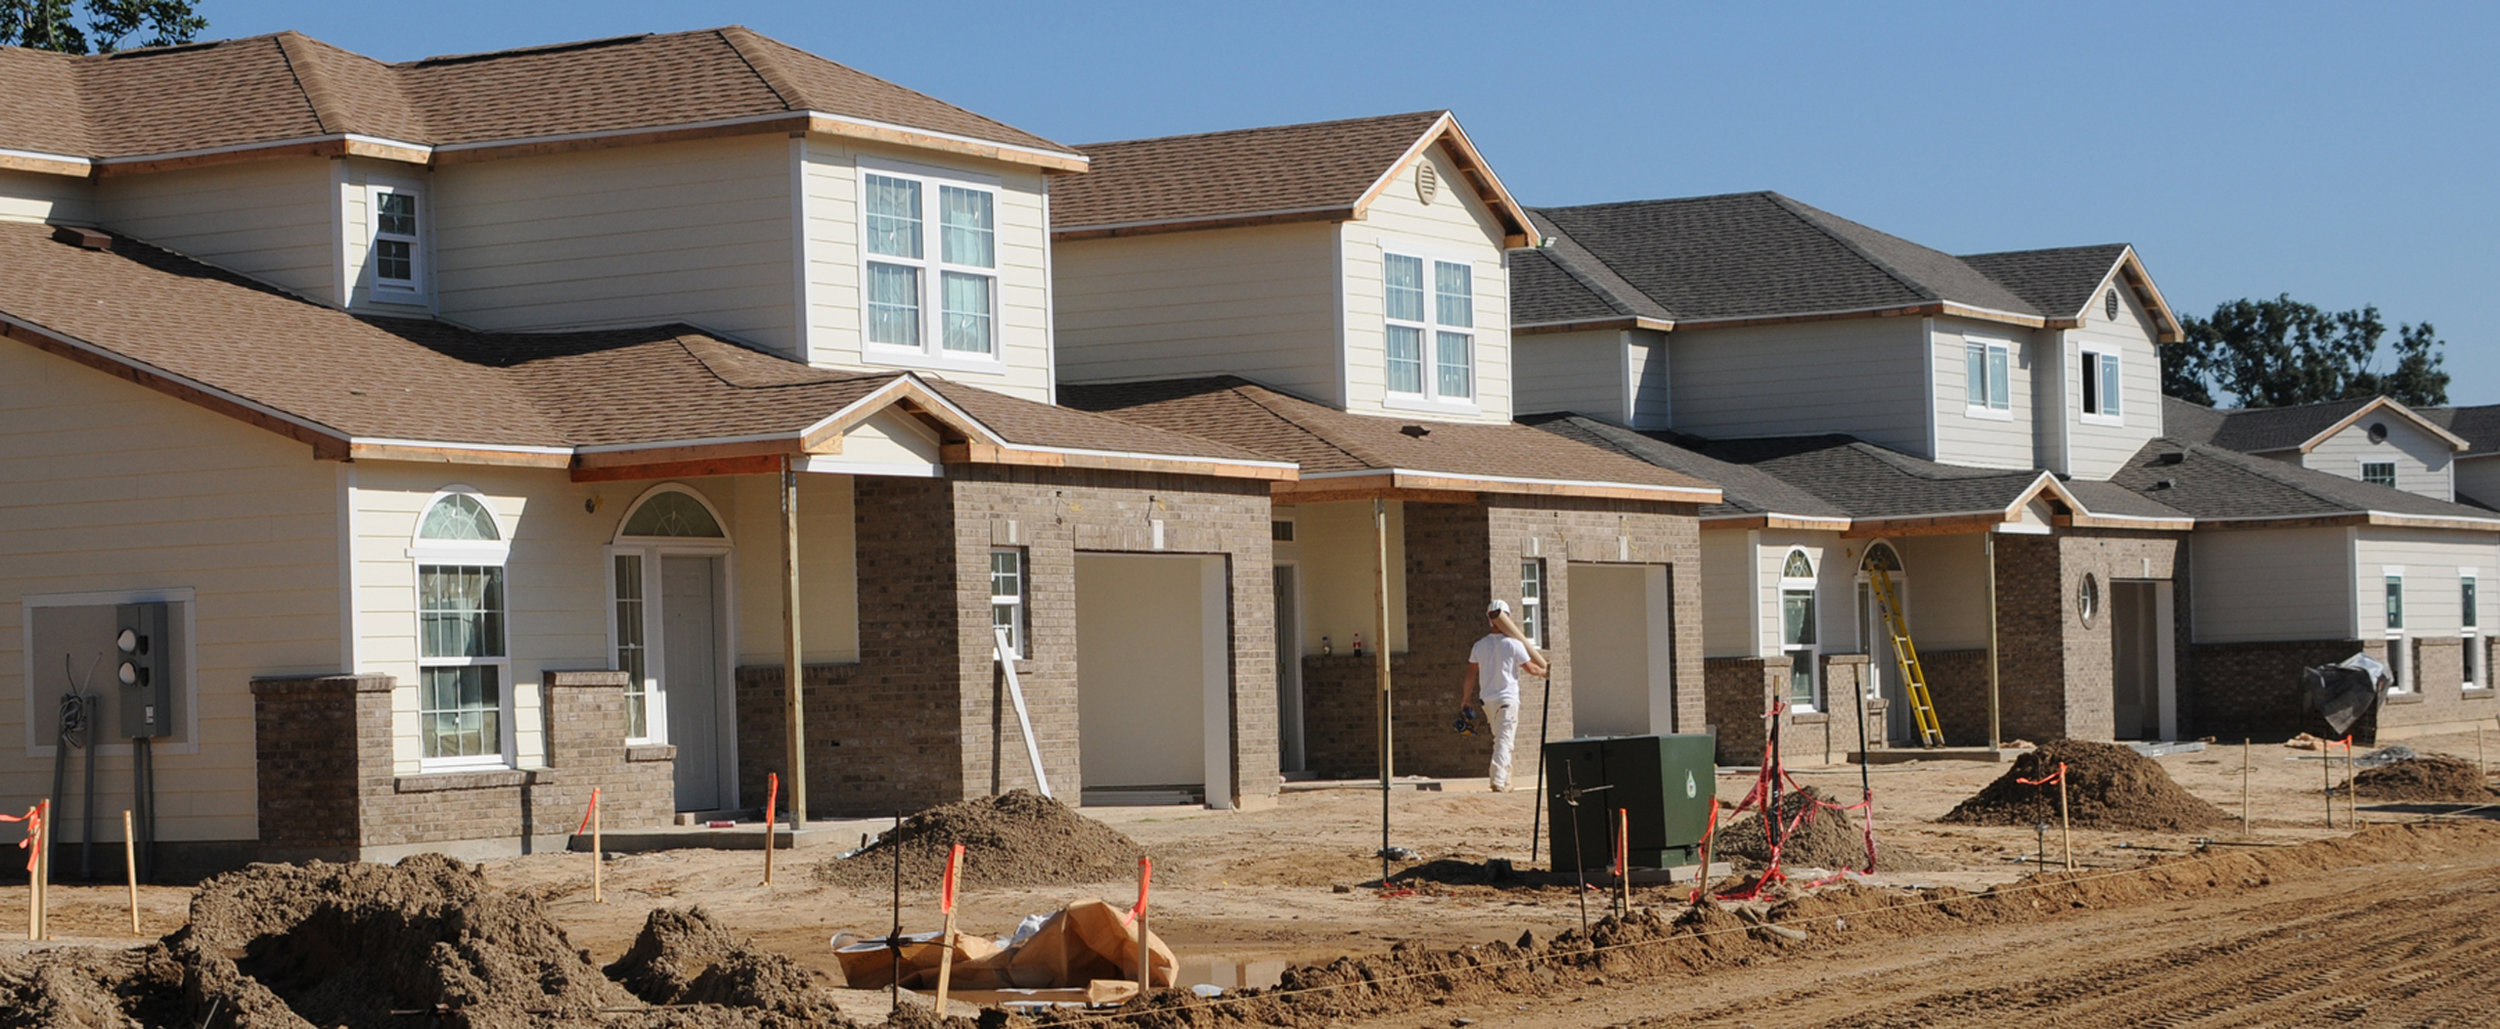 Here S What Happens When A Handful Of Developers Control The Housing Market Strong Towns